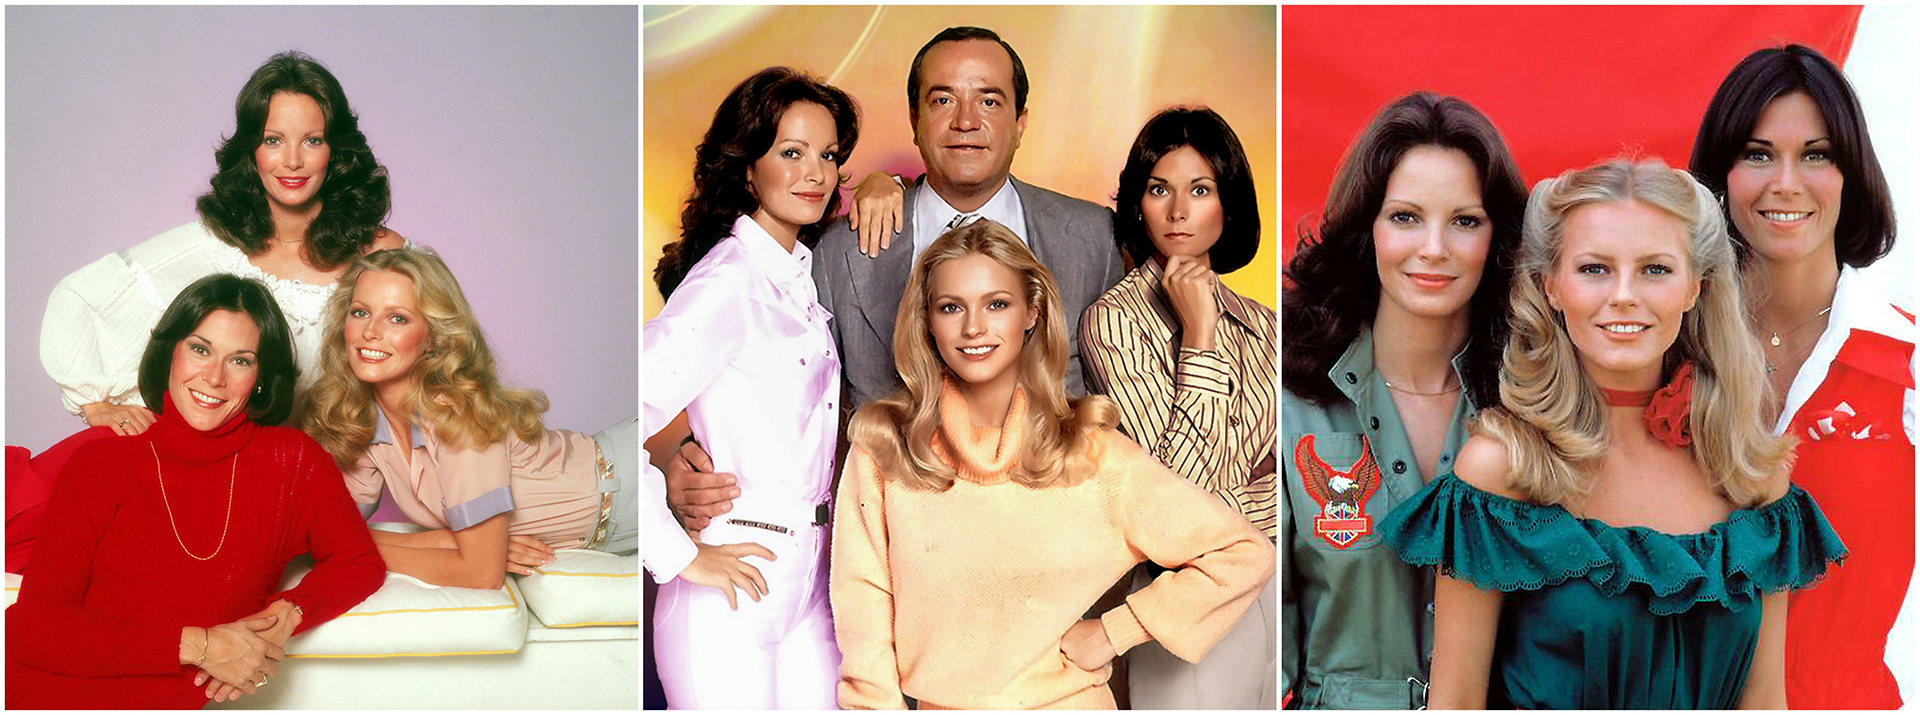 Charlie's Angels - Season 2: Kate Jackson, Jaclyn Smith & Cheryl Ladd